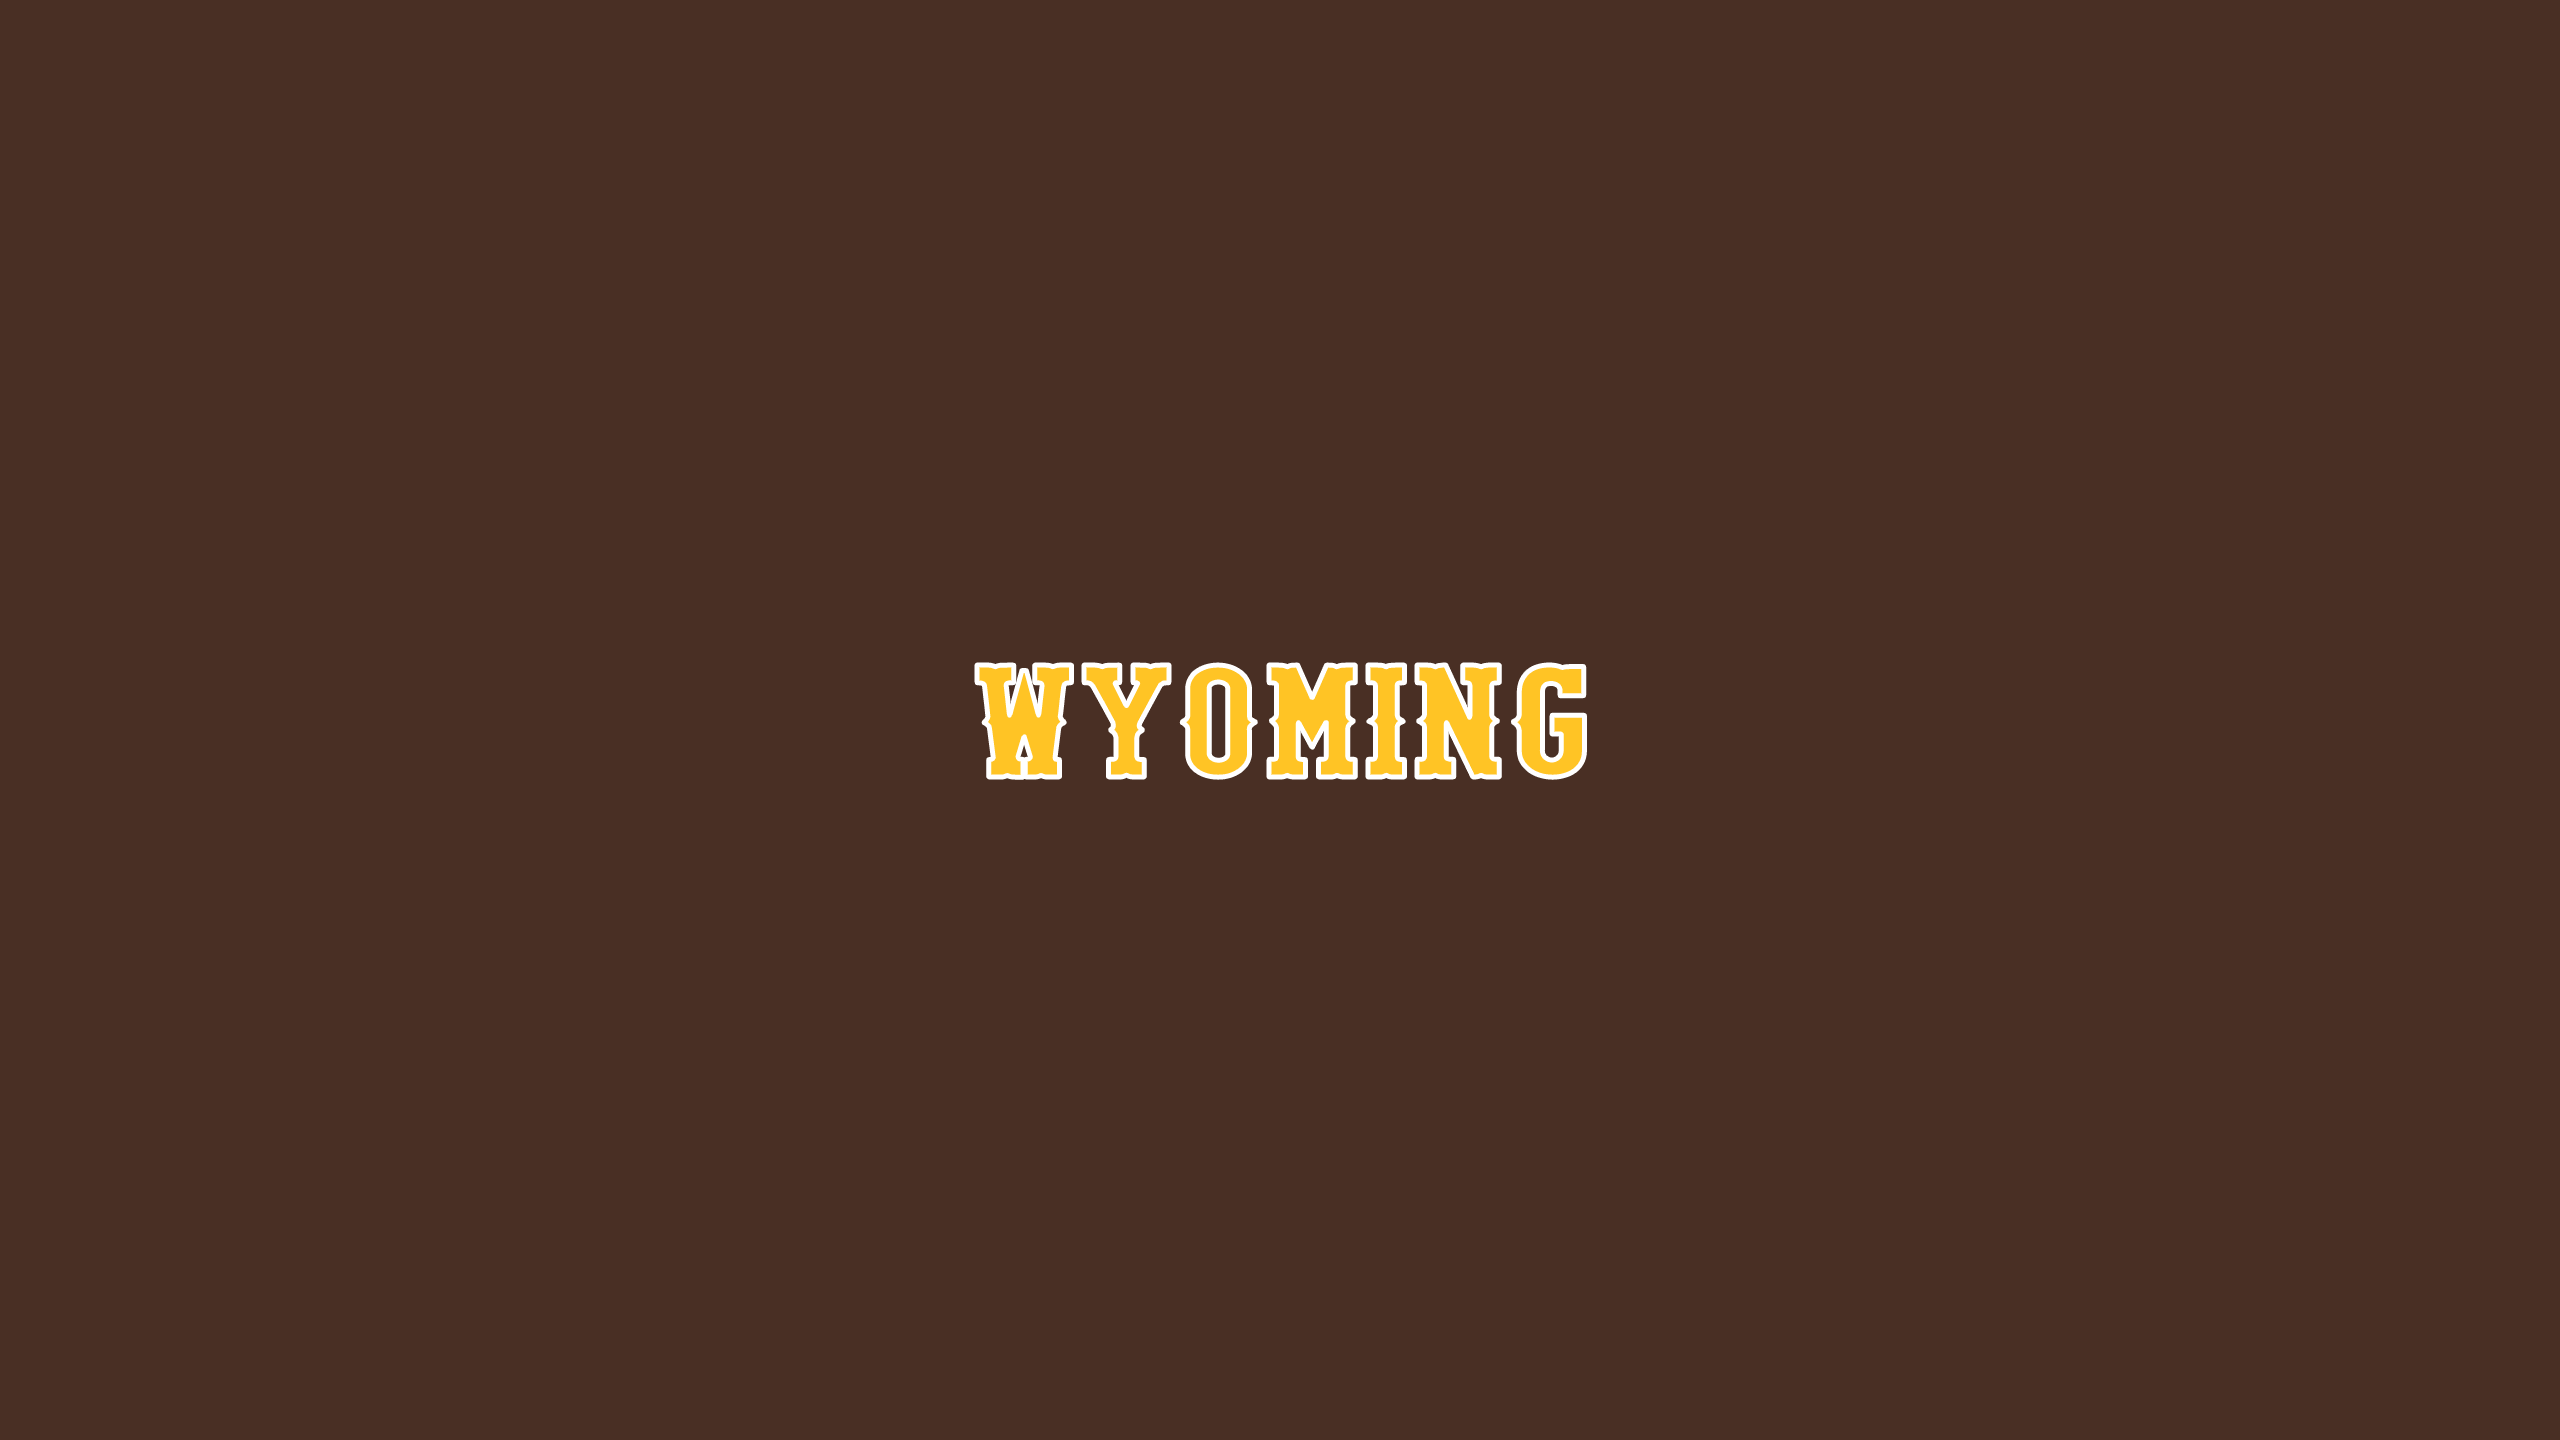 University of Wyoming Cowboys (Away)